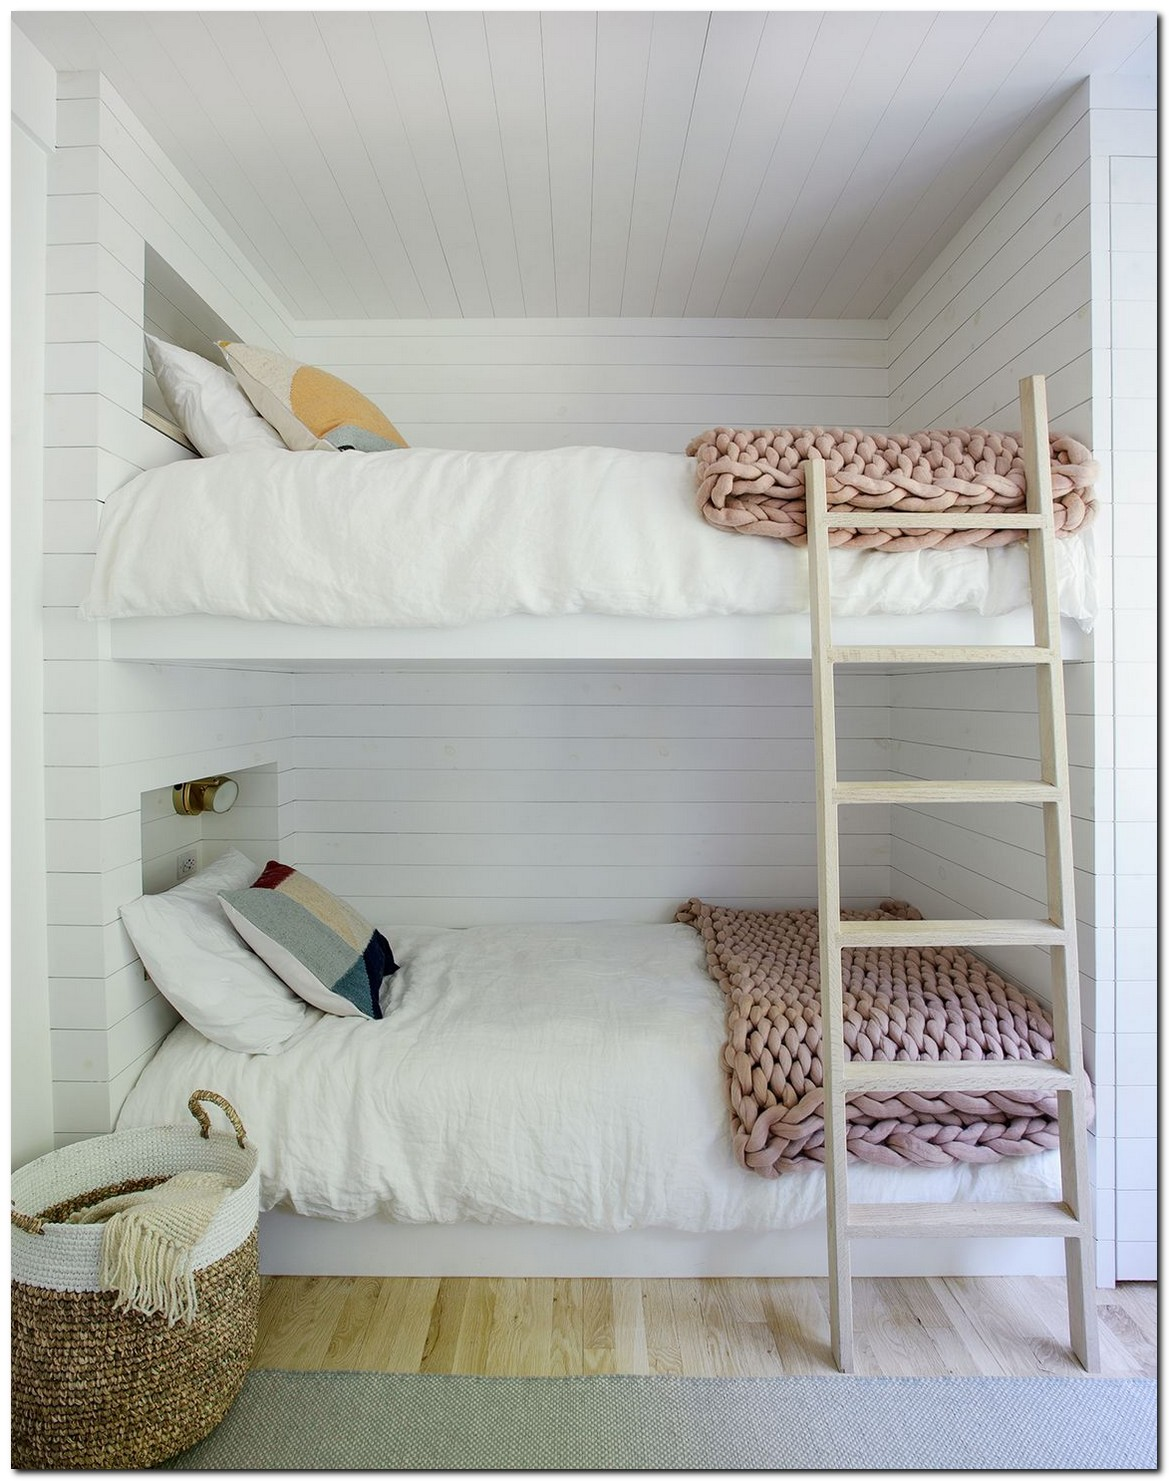 How to successfully choose bunk beds for kids 20